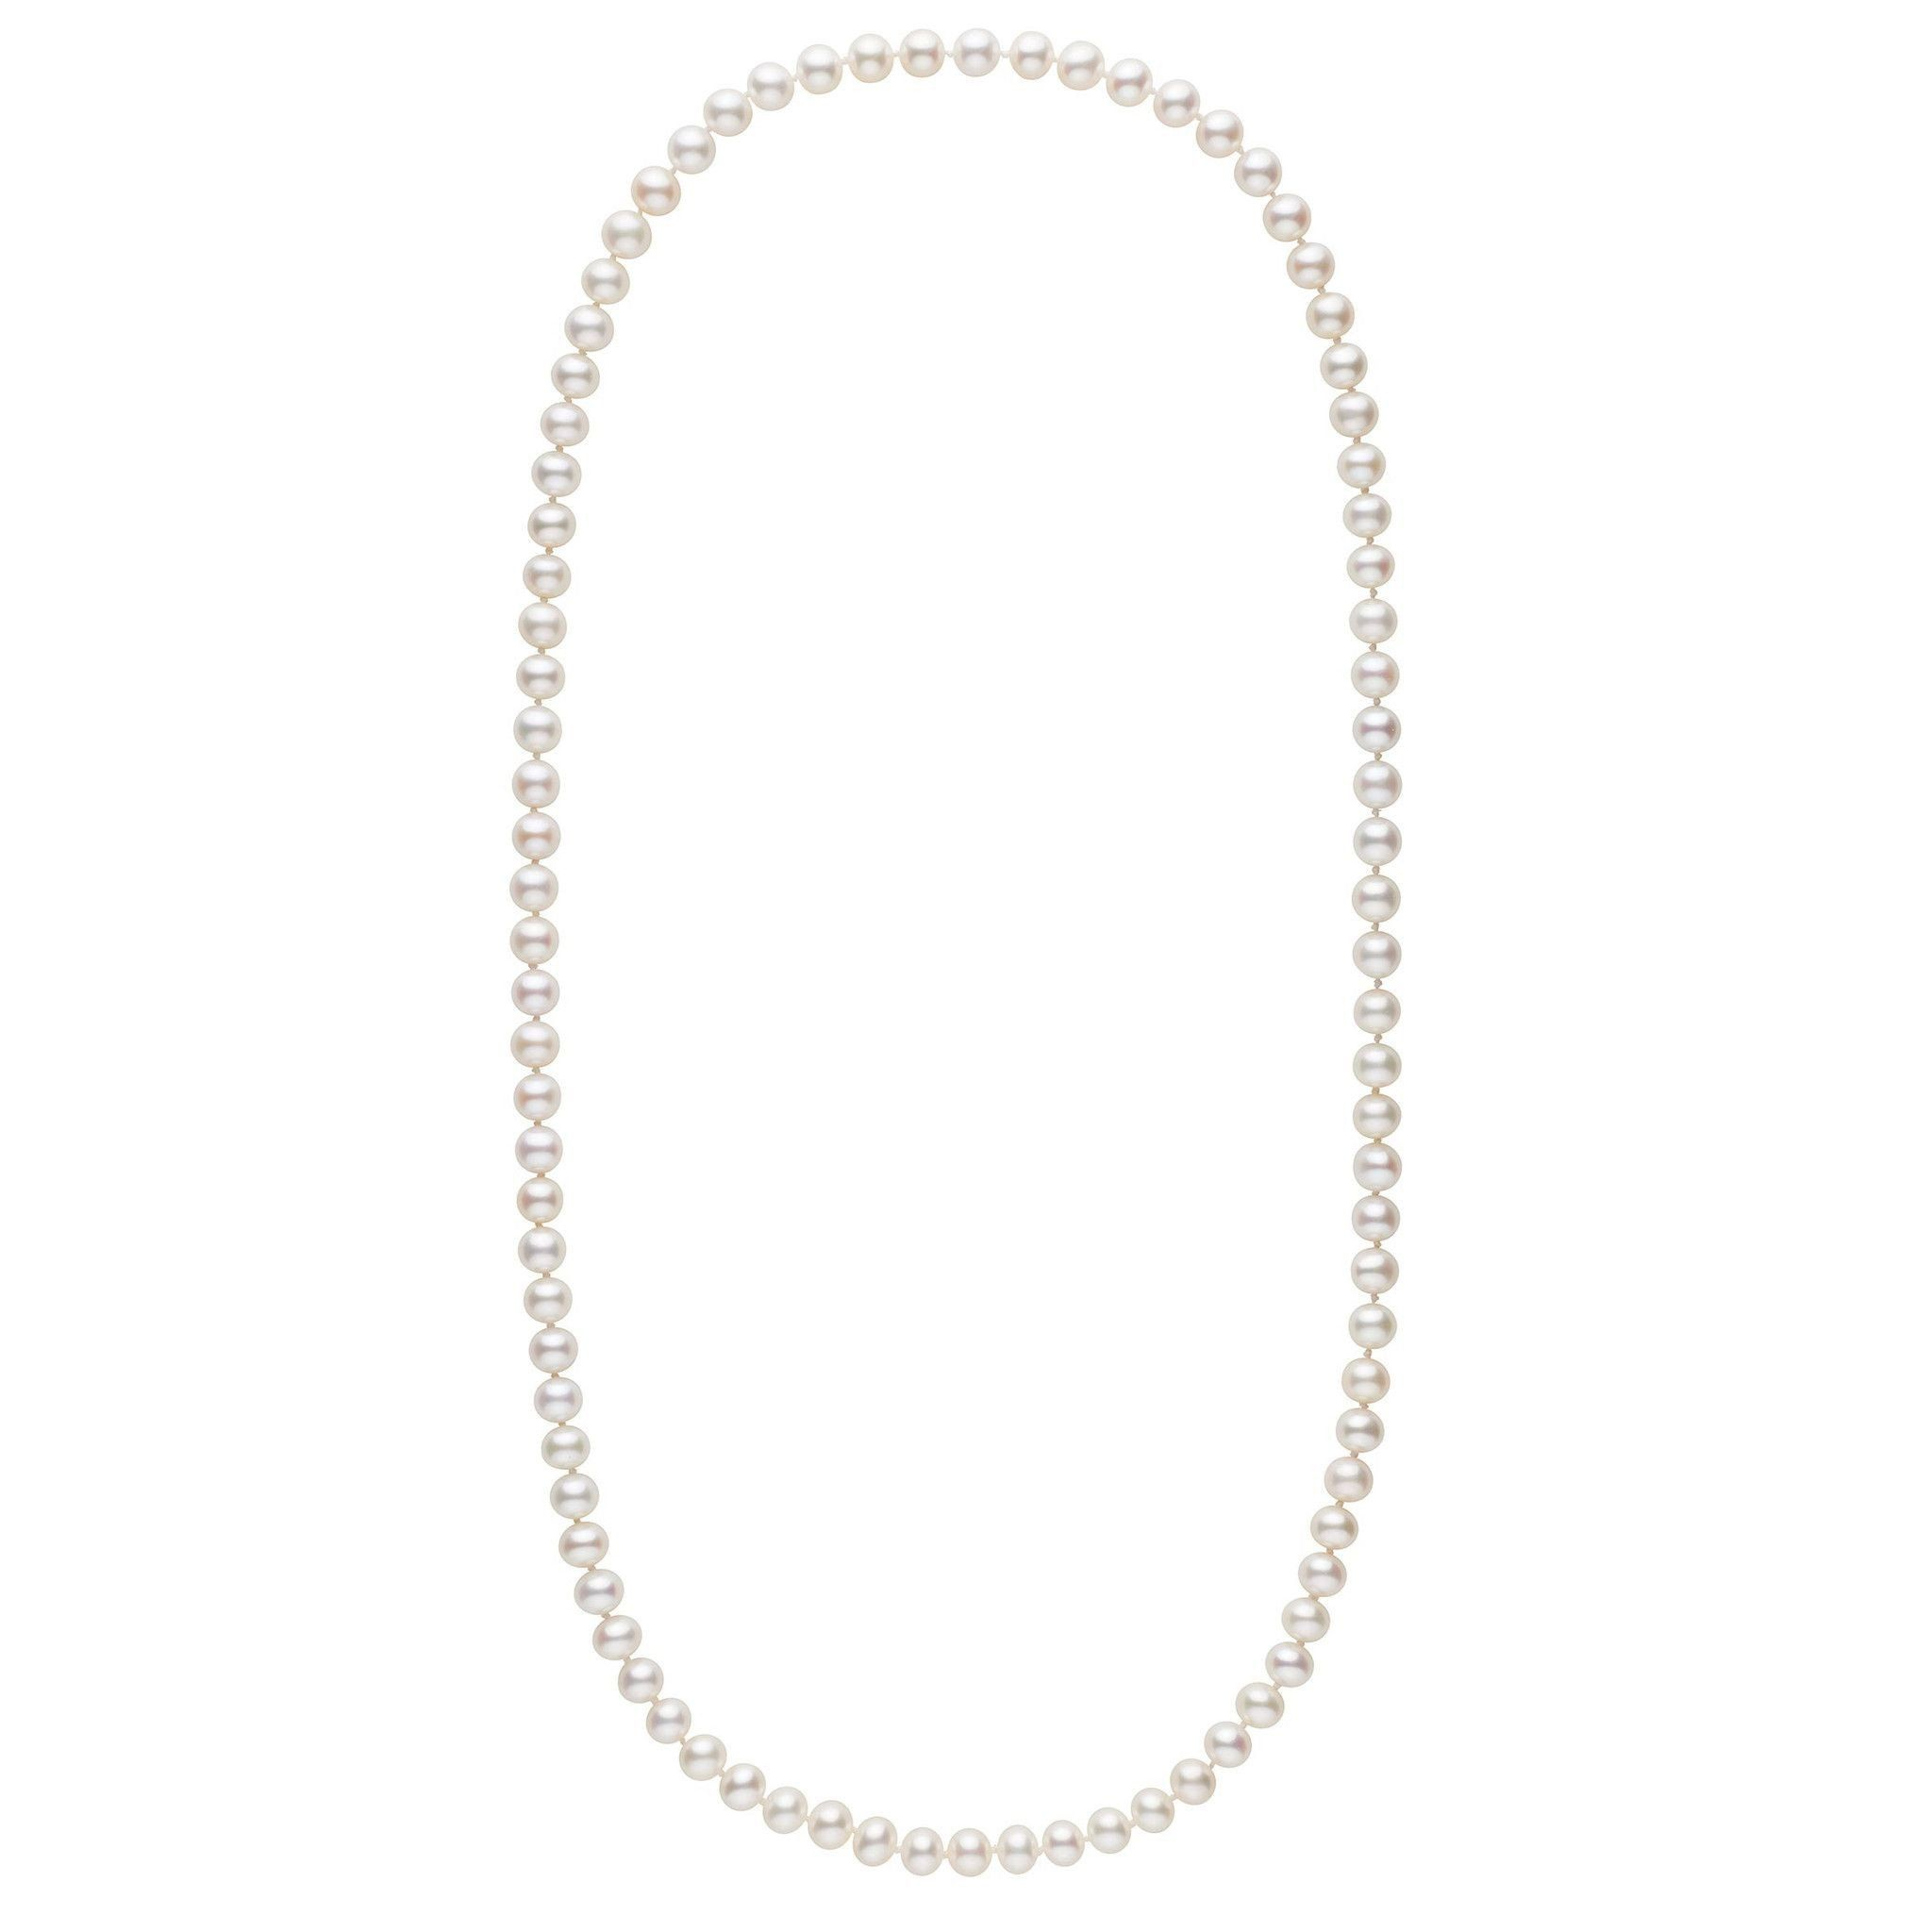 26-inch 7.5-8.0 mm AA+ White Freshwater Pearl Necklace